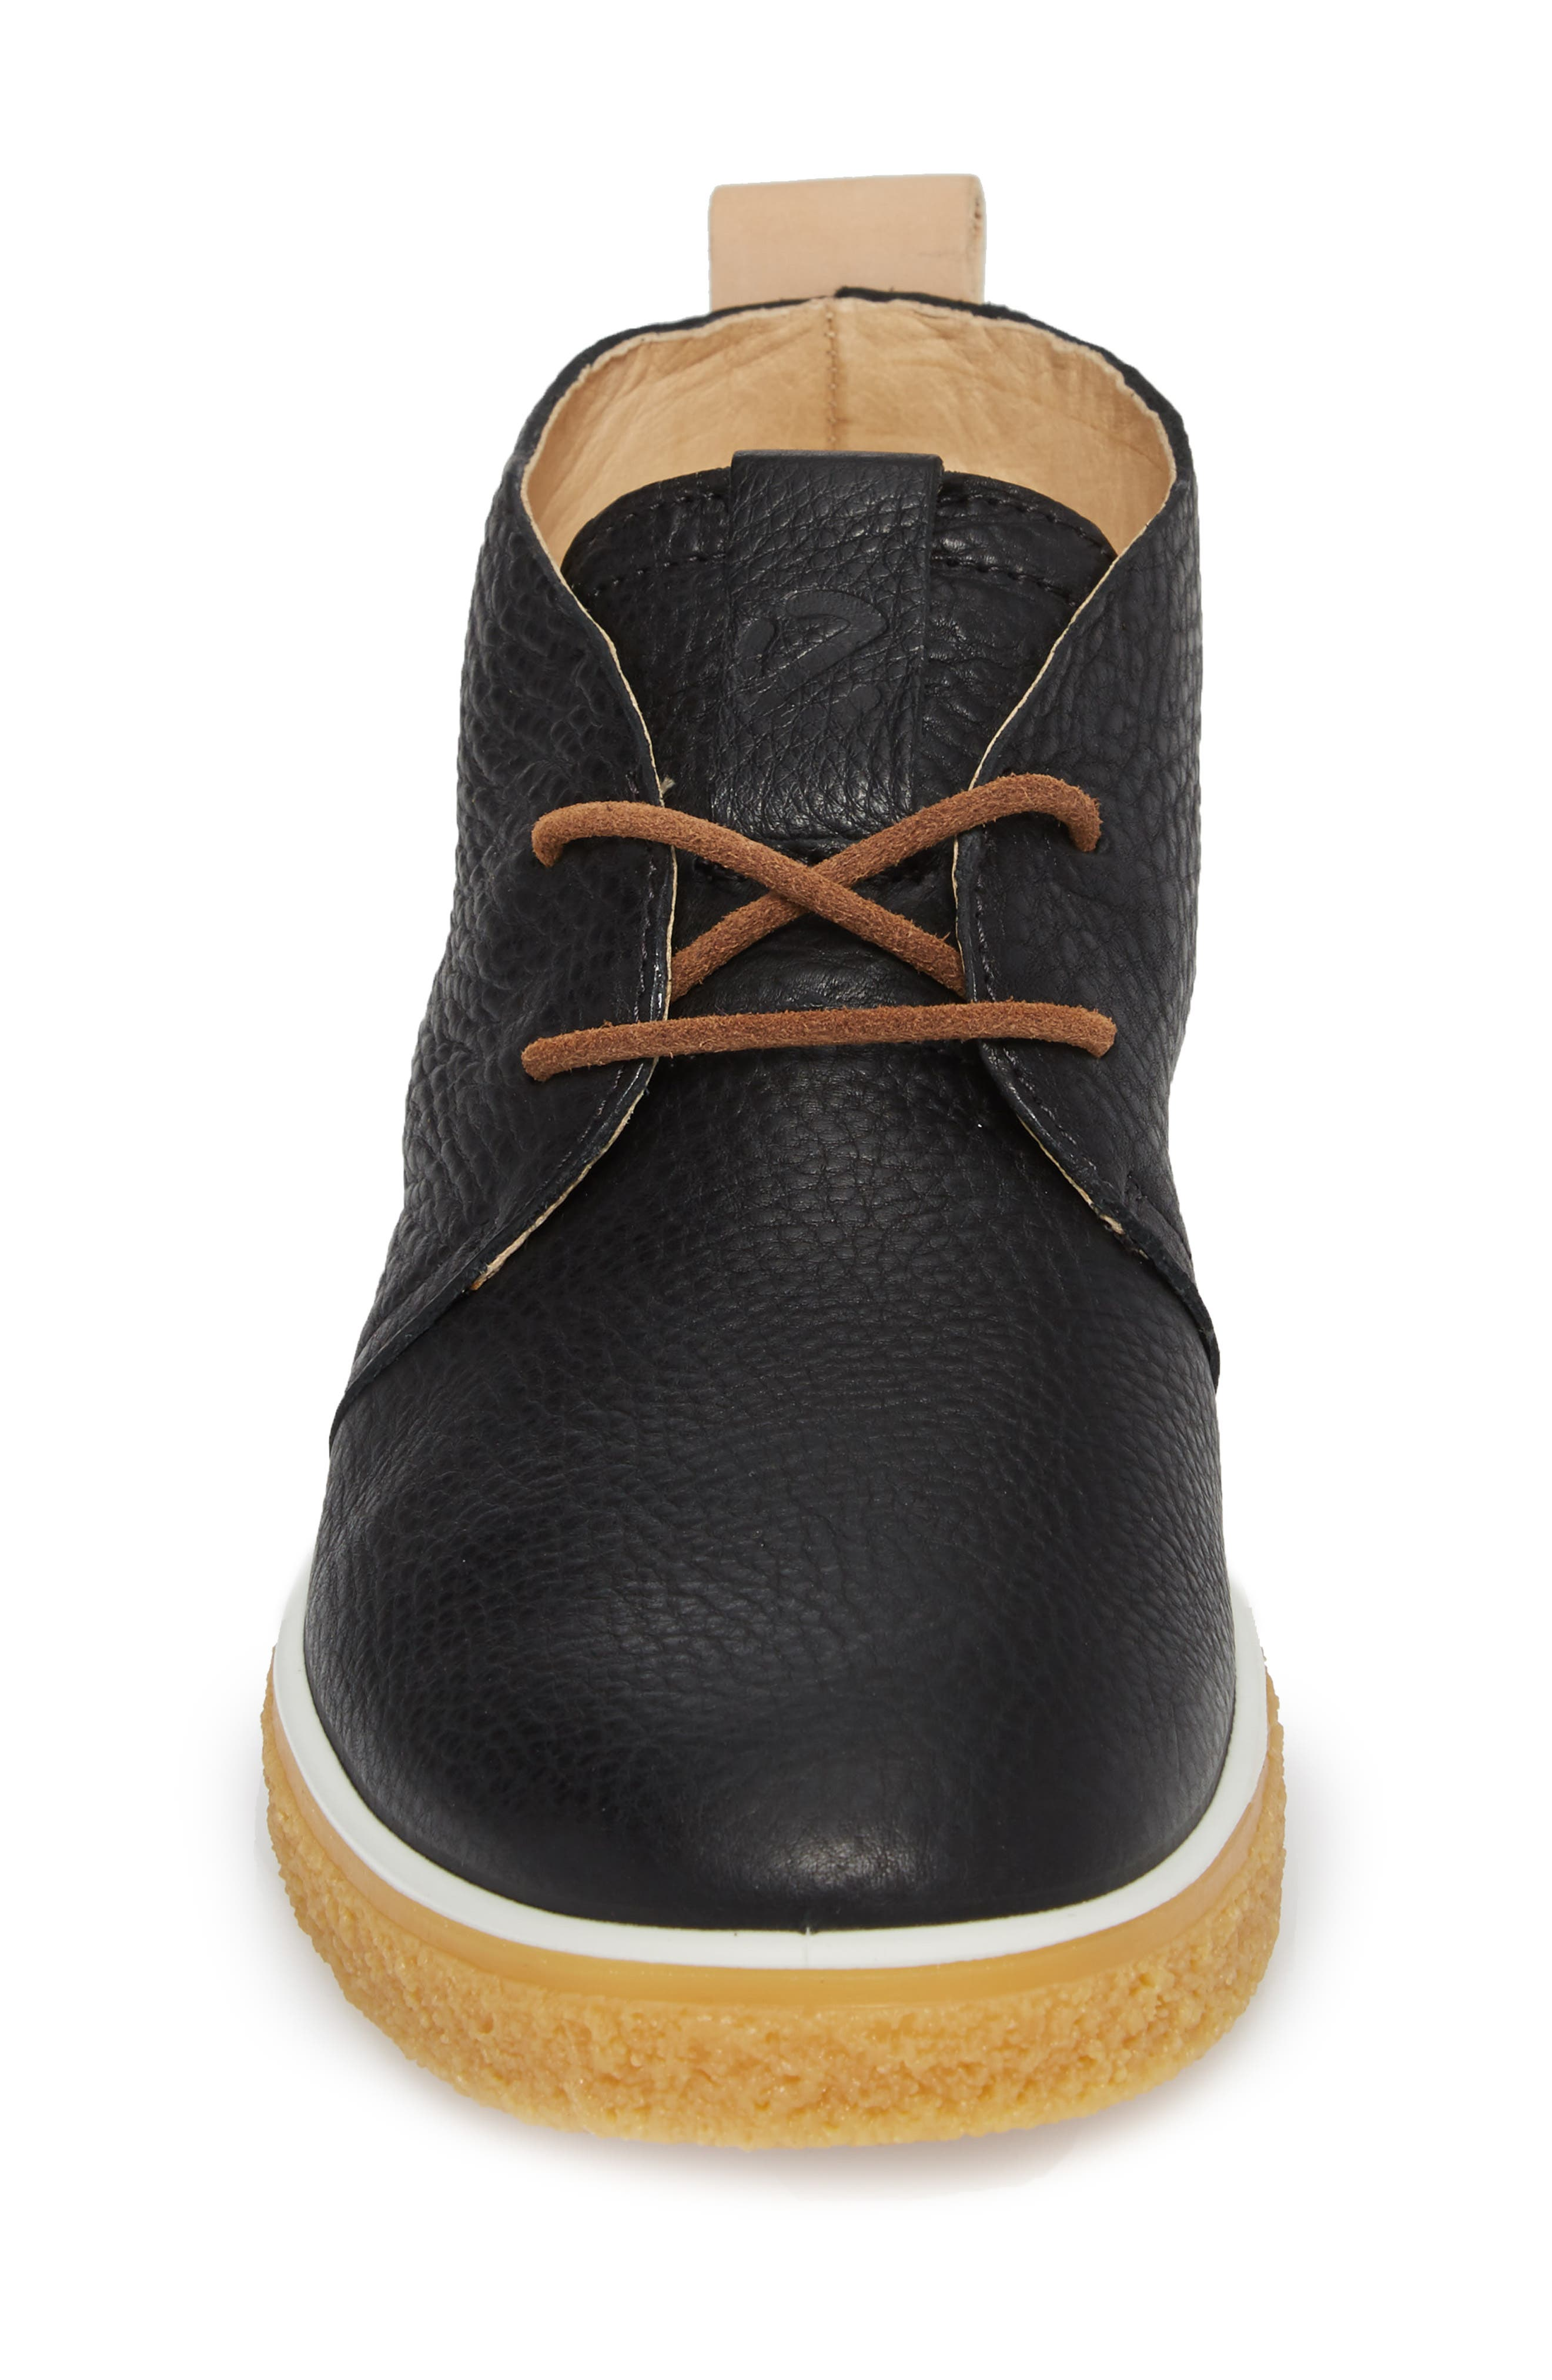 Crepetray Chukka Boot,                             Alternate thumbnail 4, color,                             BLACK POWDER LEATHER